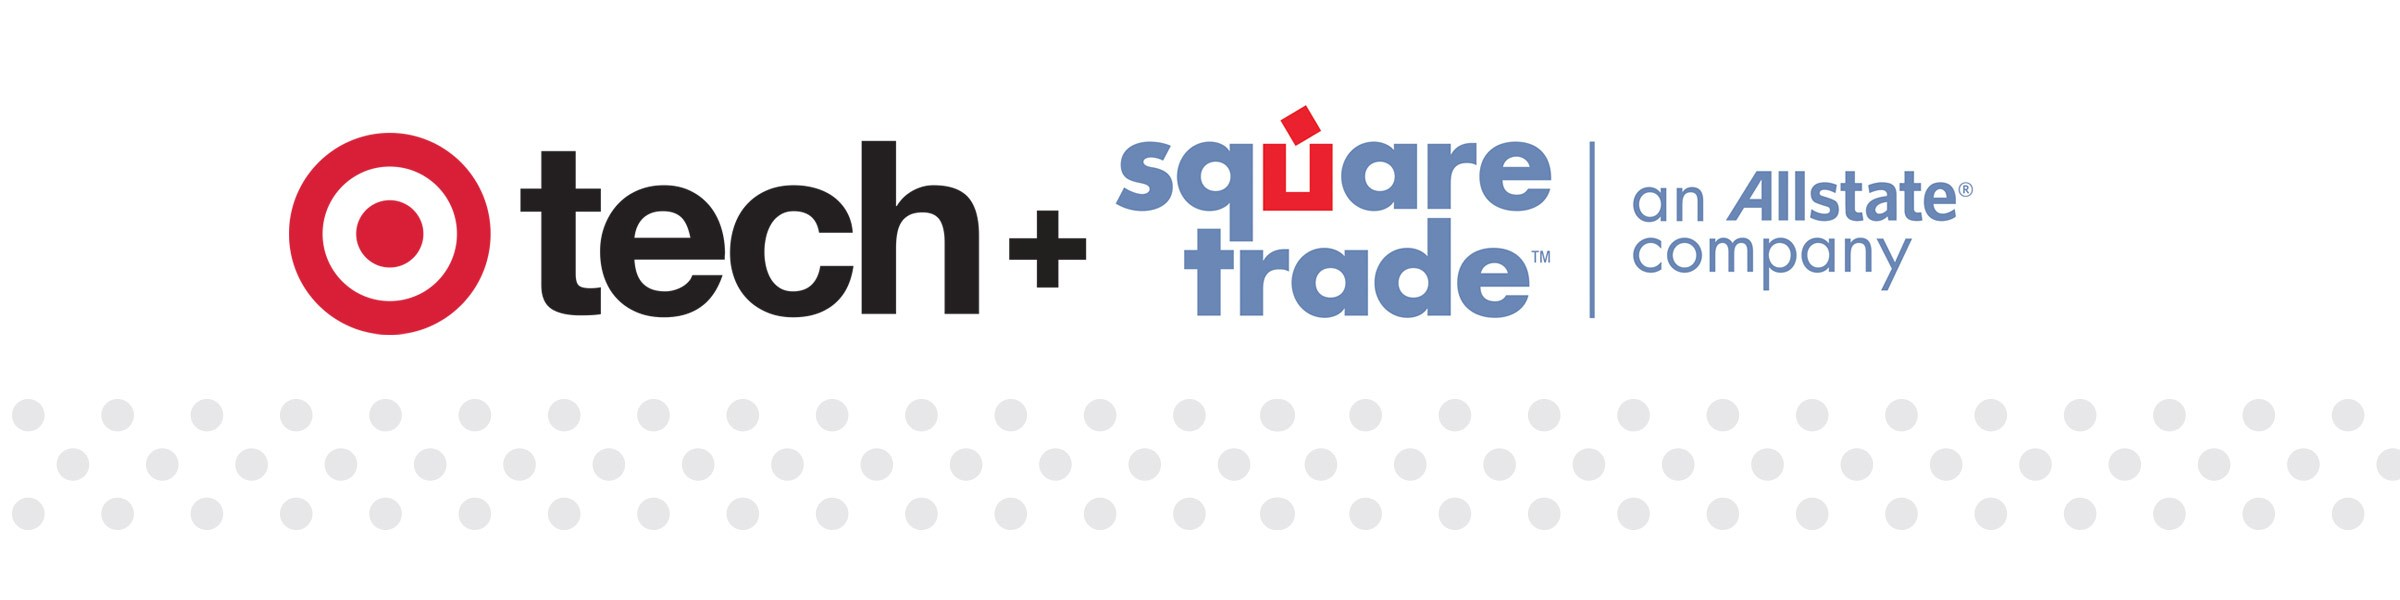 Target tech plus square trade. an Allstate registered company